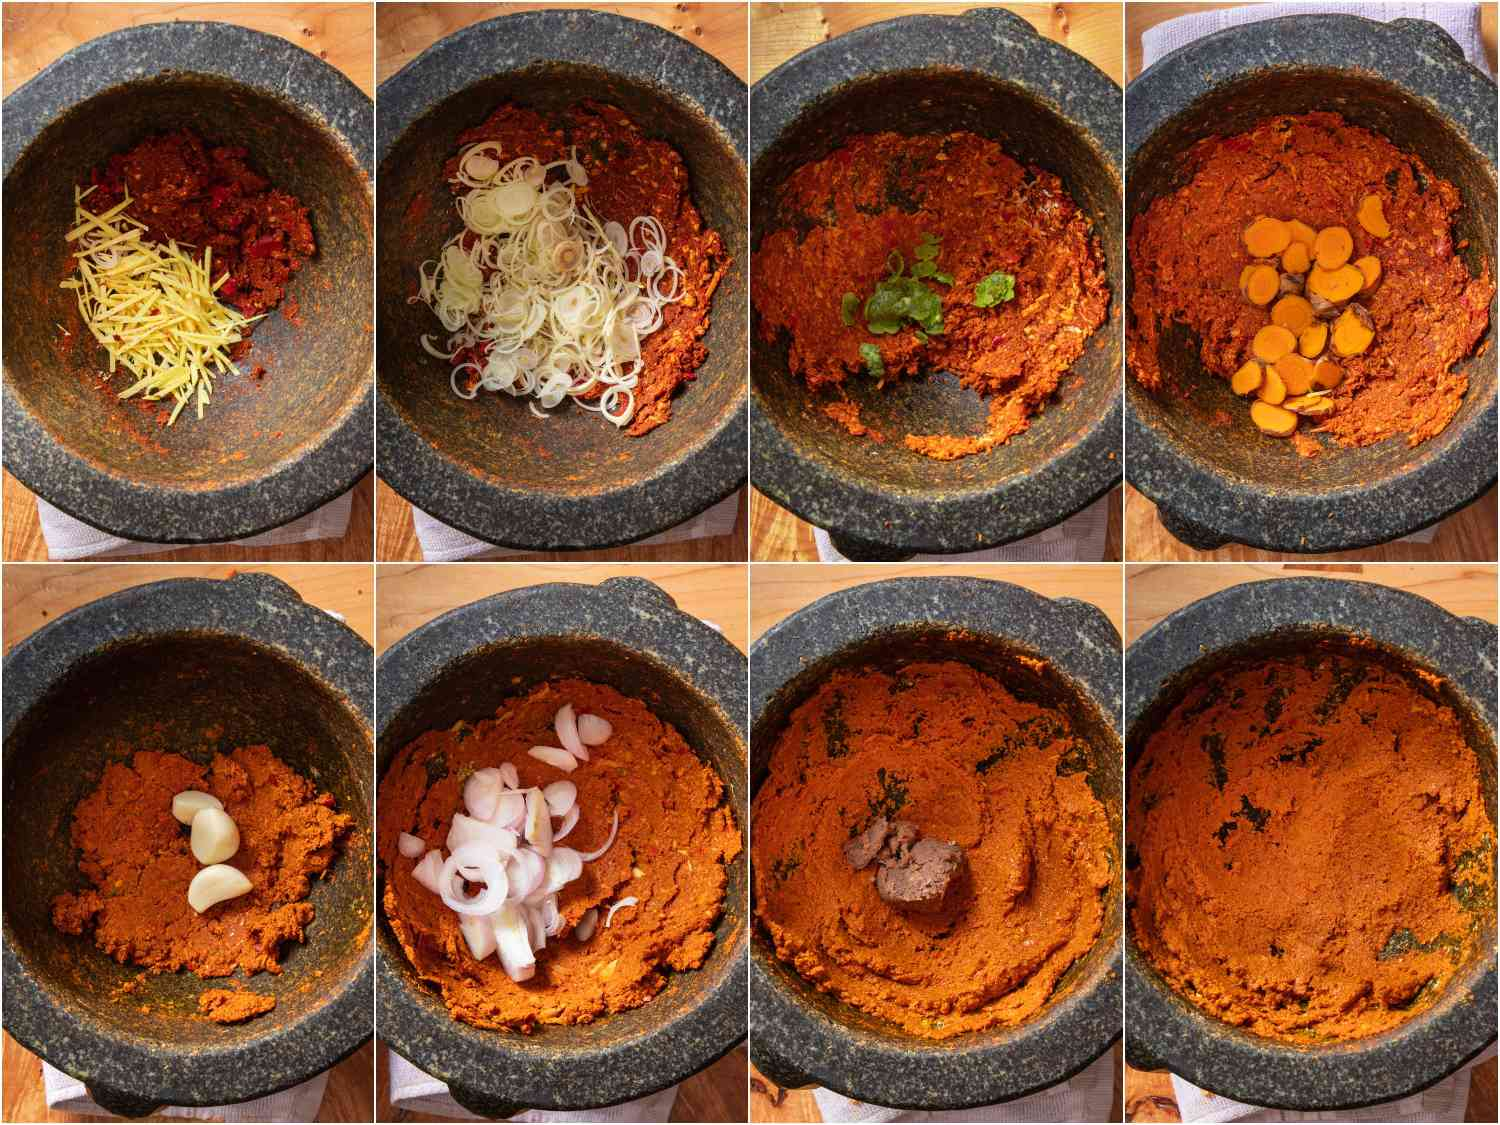 collage: progression of pounding Prik Gaeng Pak Dtai (Southern Thai Curry Paste) in a mortar and pestle